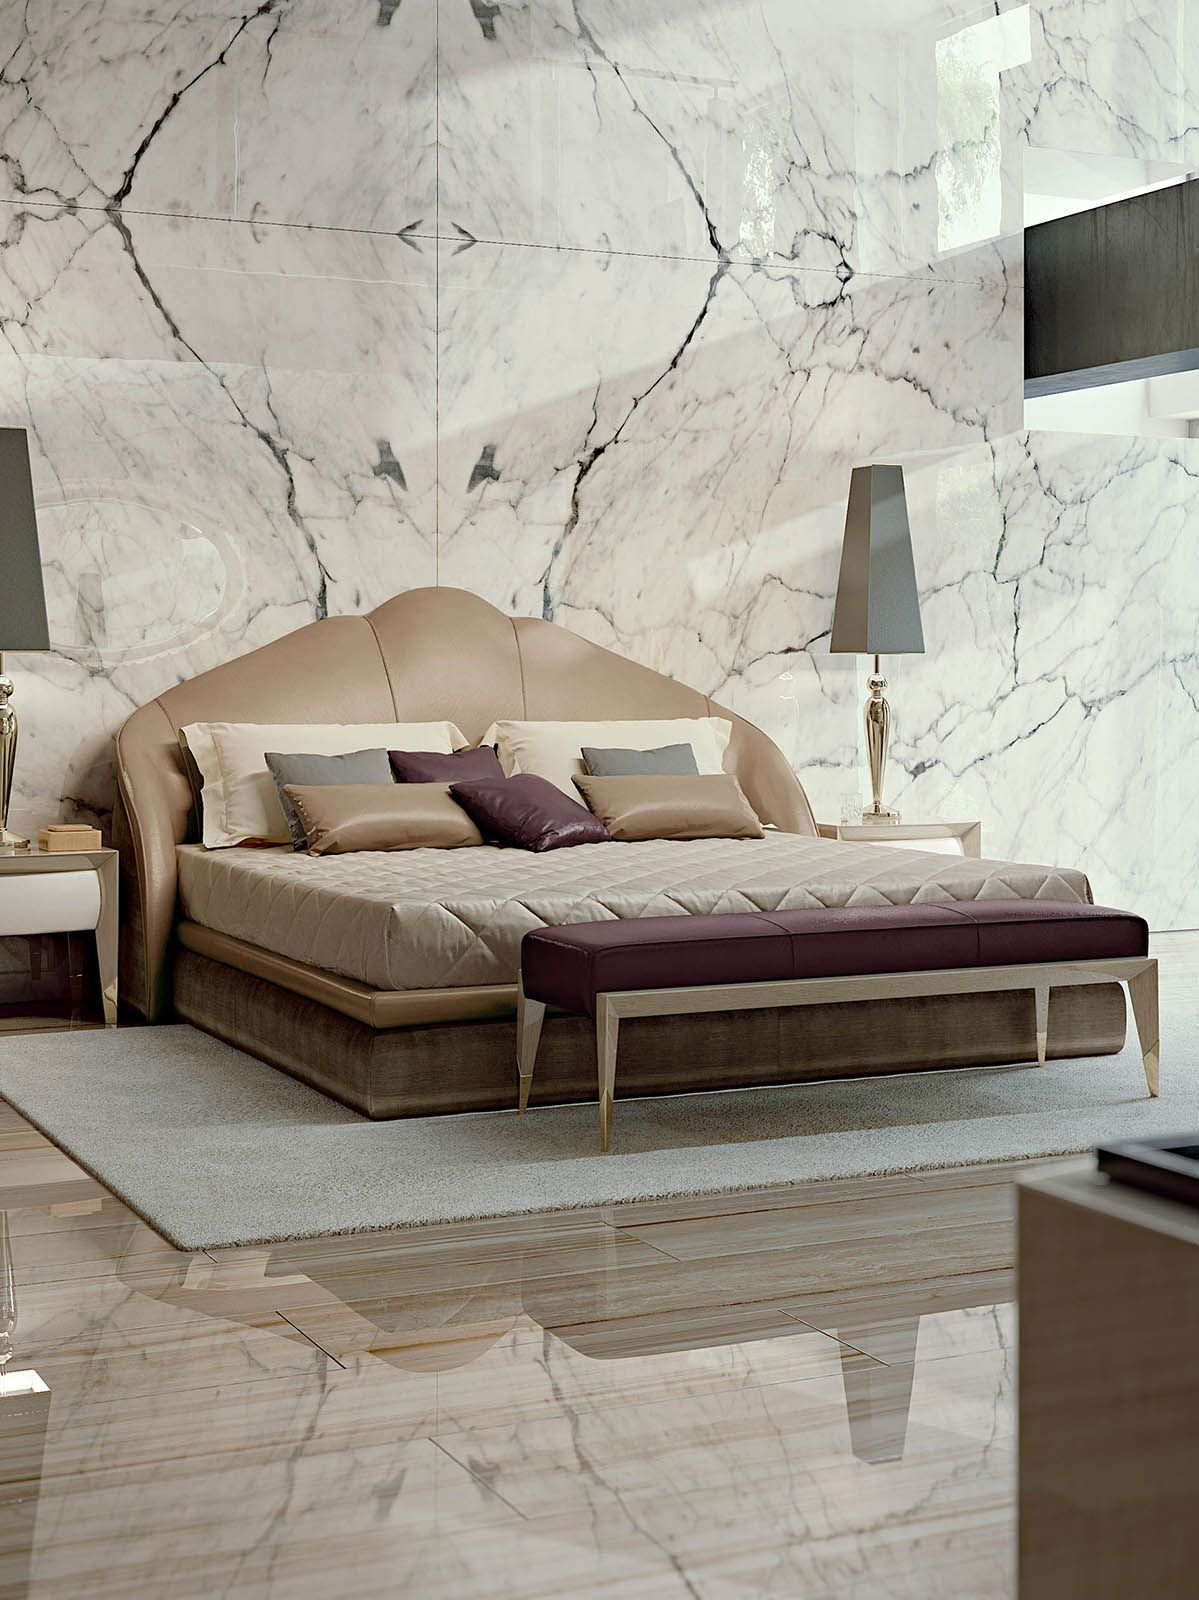 Best Italian Furniture For Exclusive And Modern Design Luxury 640 x 480